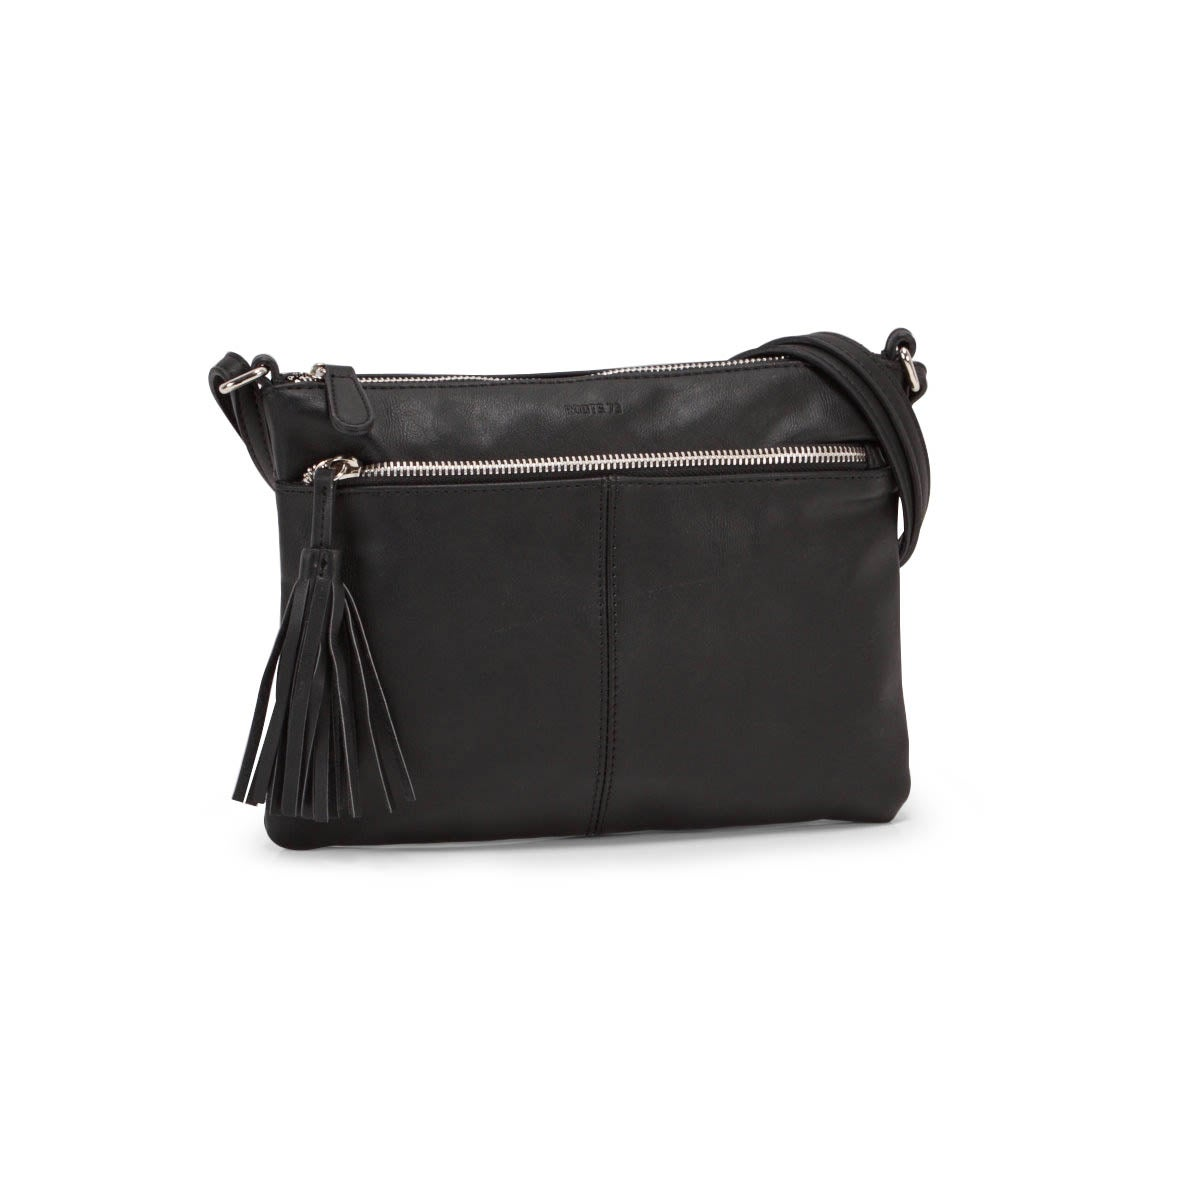 Lds Roots73 black tassel crossbody